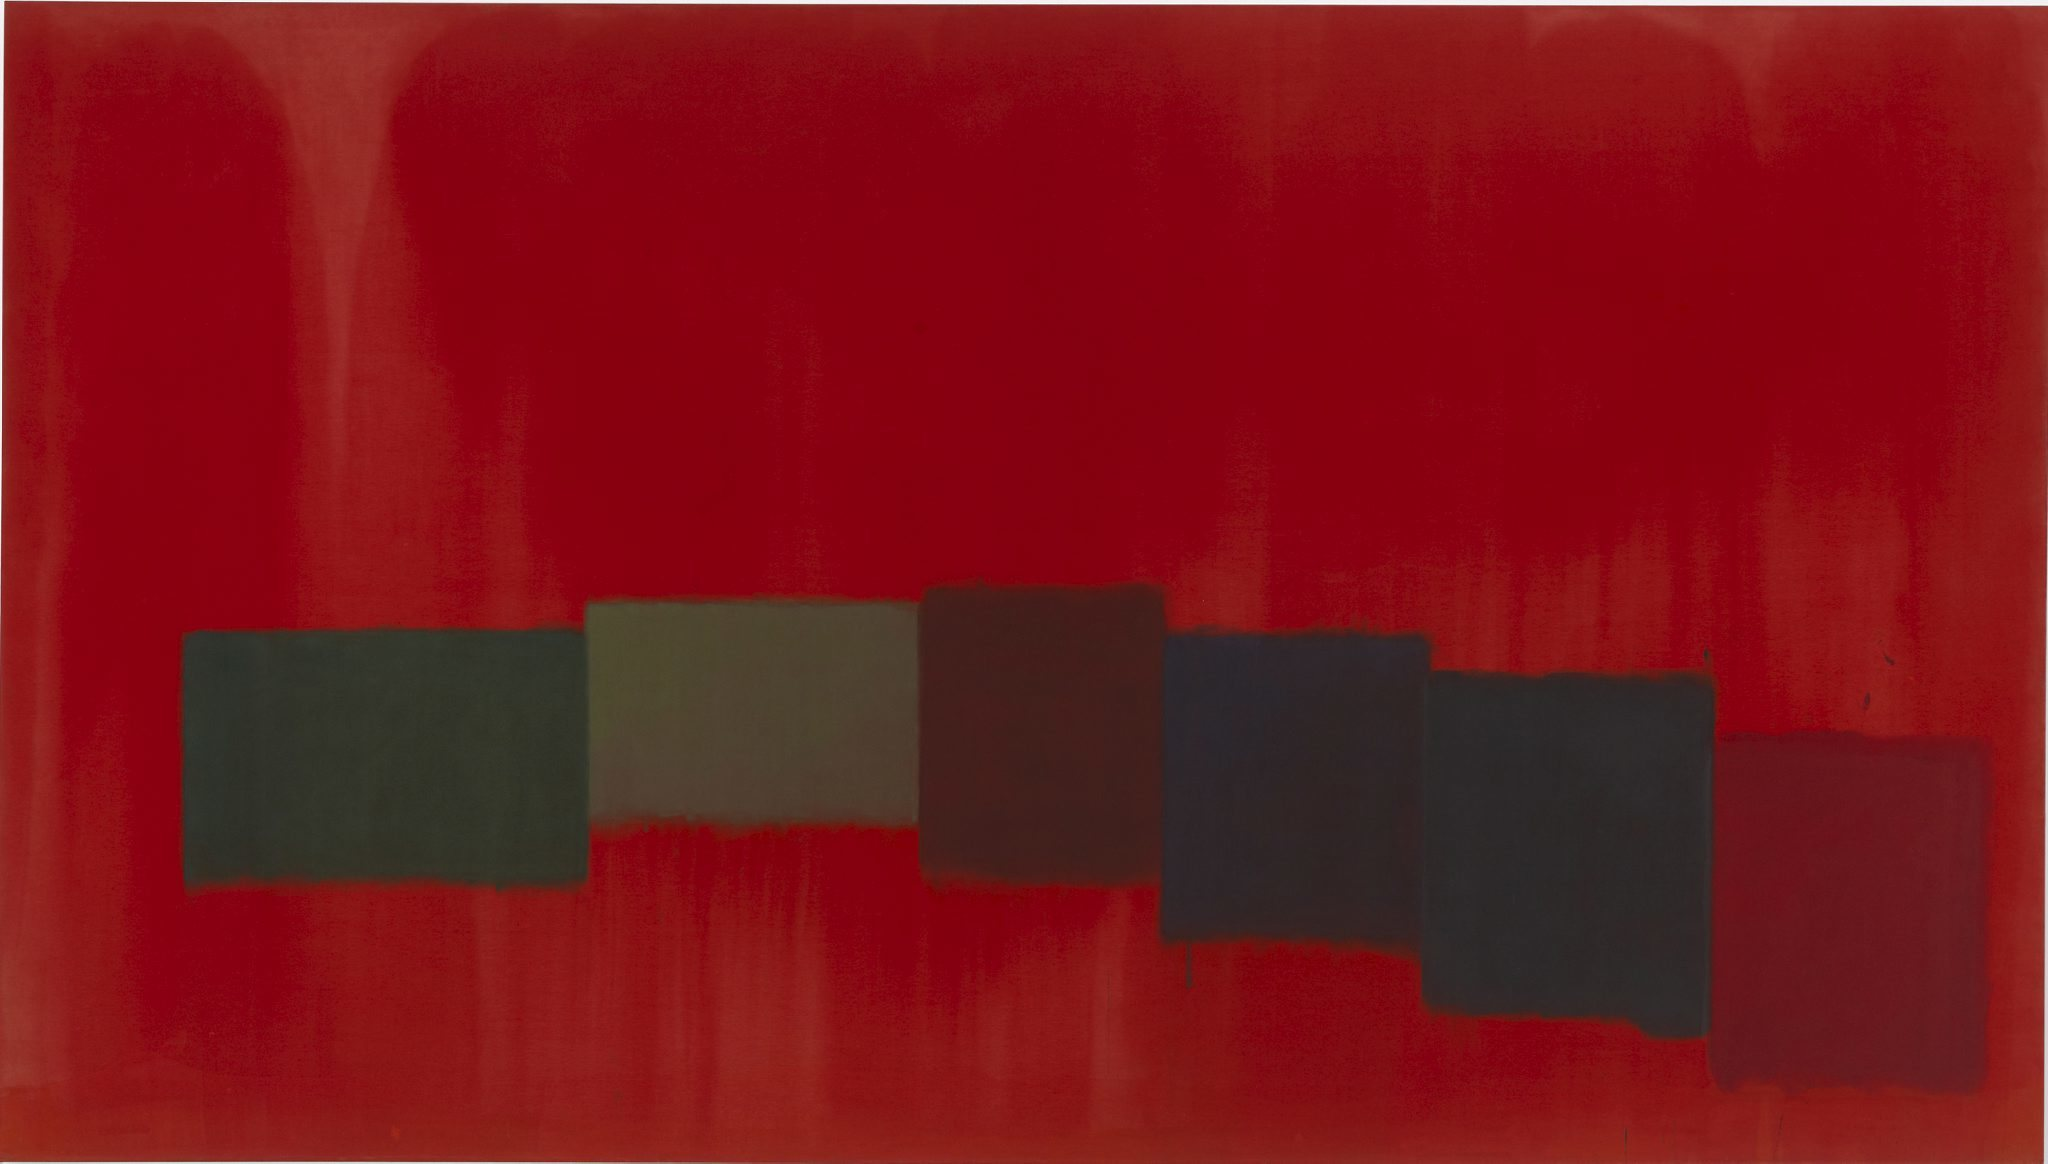 John Hoyland: Power Stations – Paintings 1964-1982